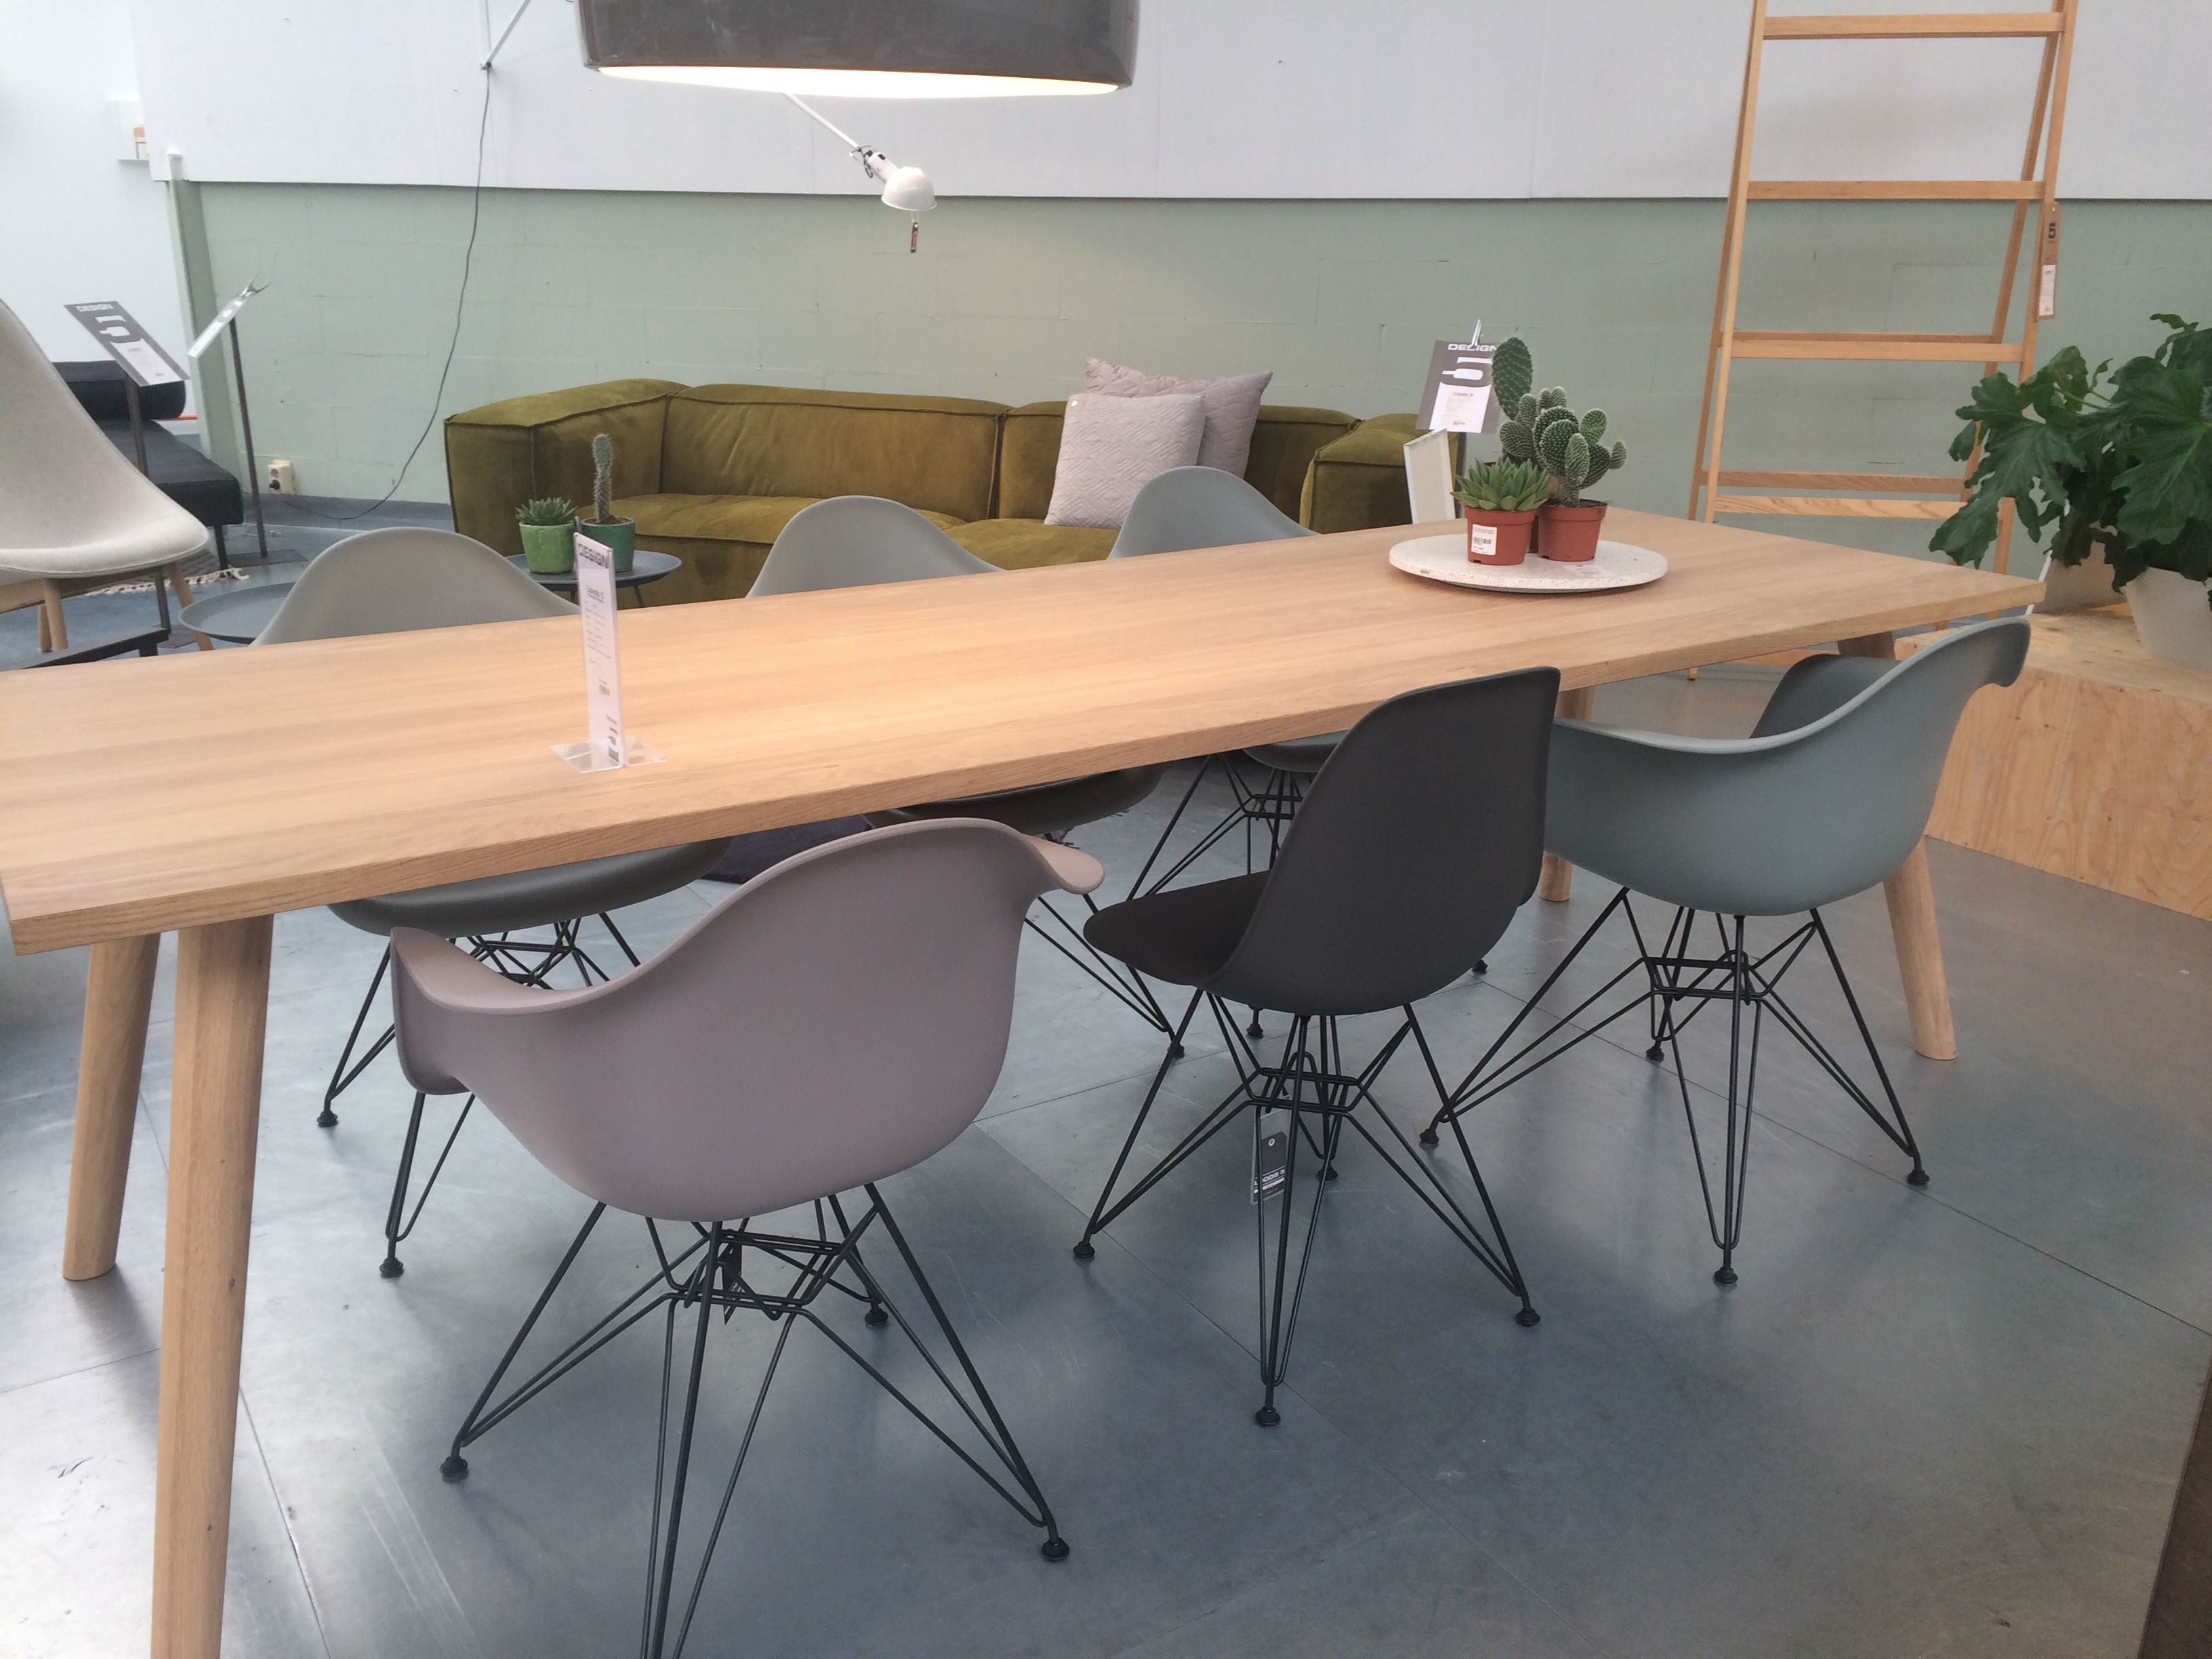 Wohnzimmer Basalt Eames Chairs In Colours Mauve Grey Basalt And Moss Grey Vitra